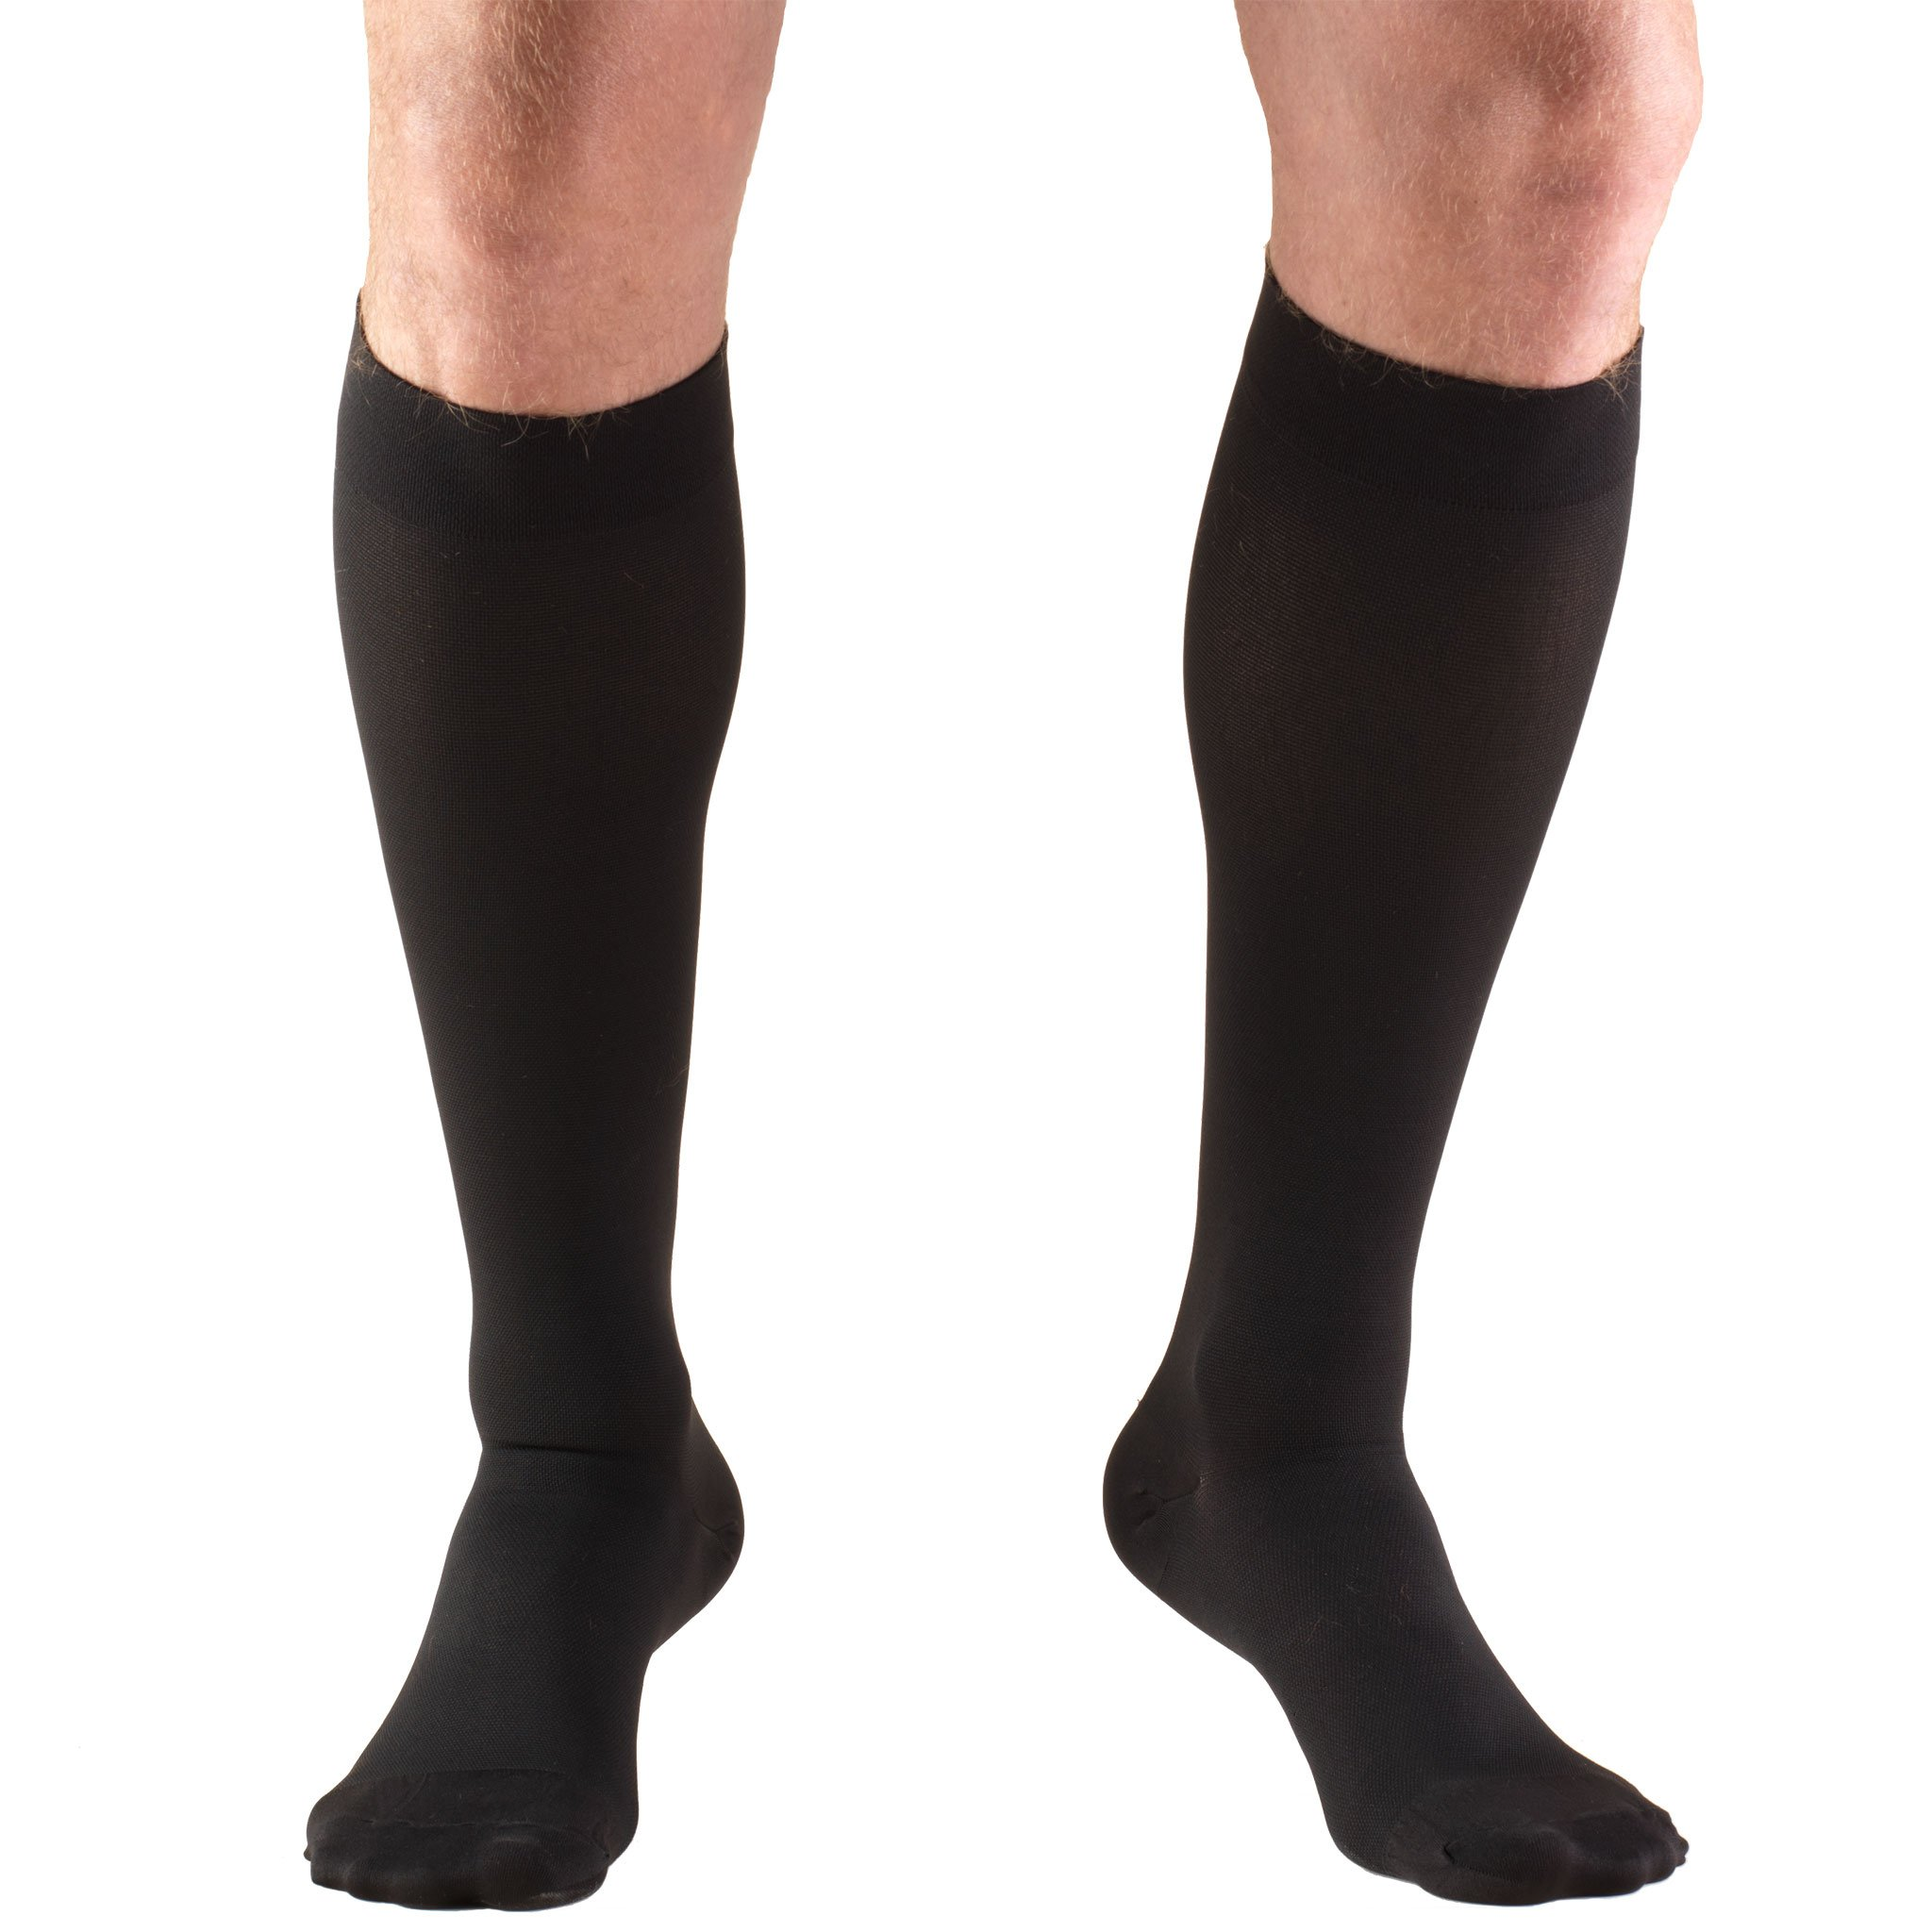 Truform 20-30 mmHg Compression Stockings for Men and Women, Knee High Length, Closed Toe, Black, 3X-Large by Truform